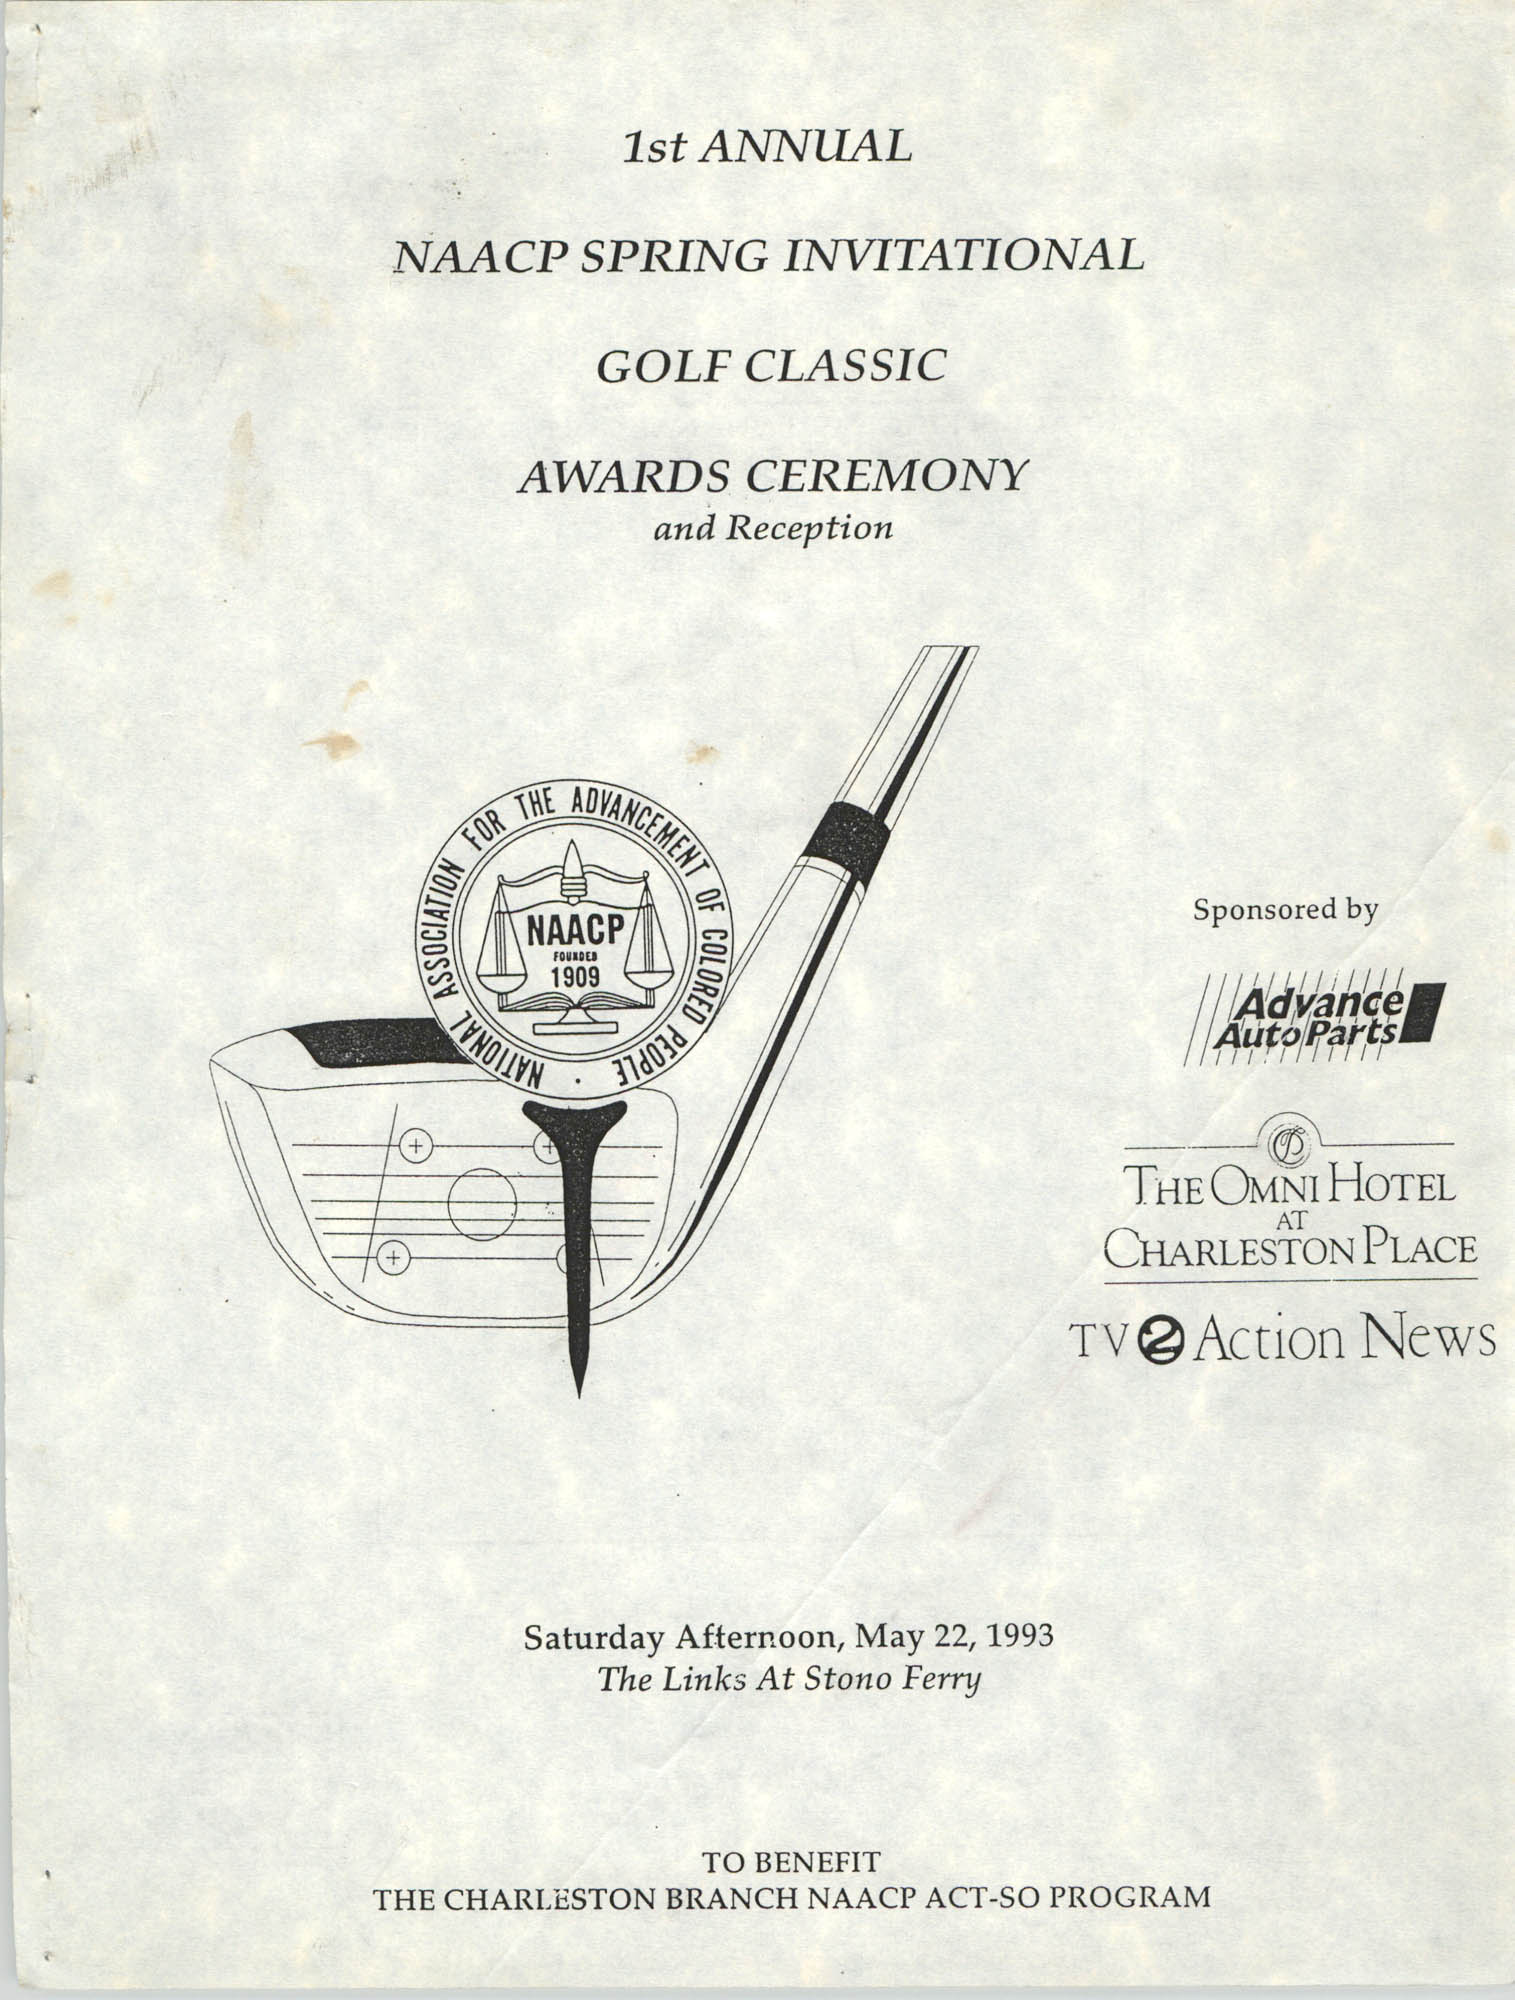 1st Annual NAACP Spring Invitational Golf Classic Awards Ceremony and Reception, NAACP, 1993